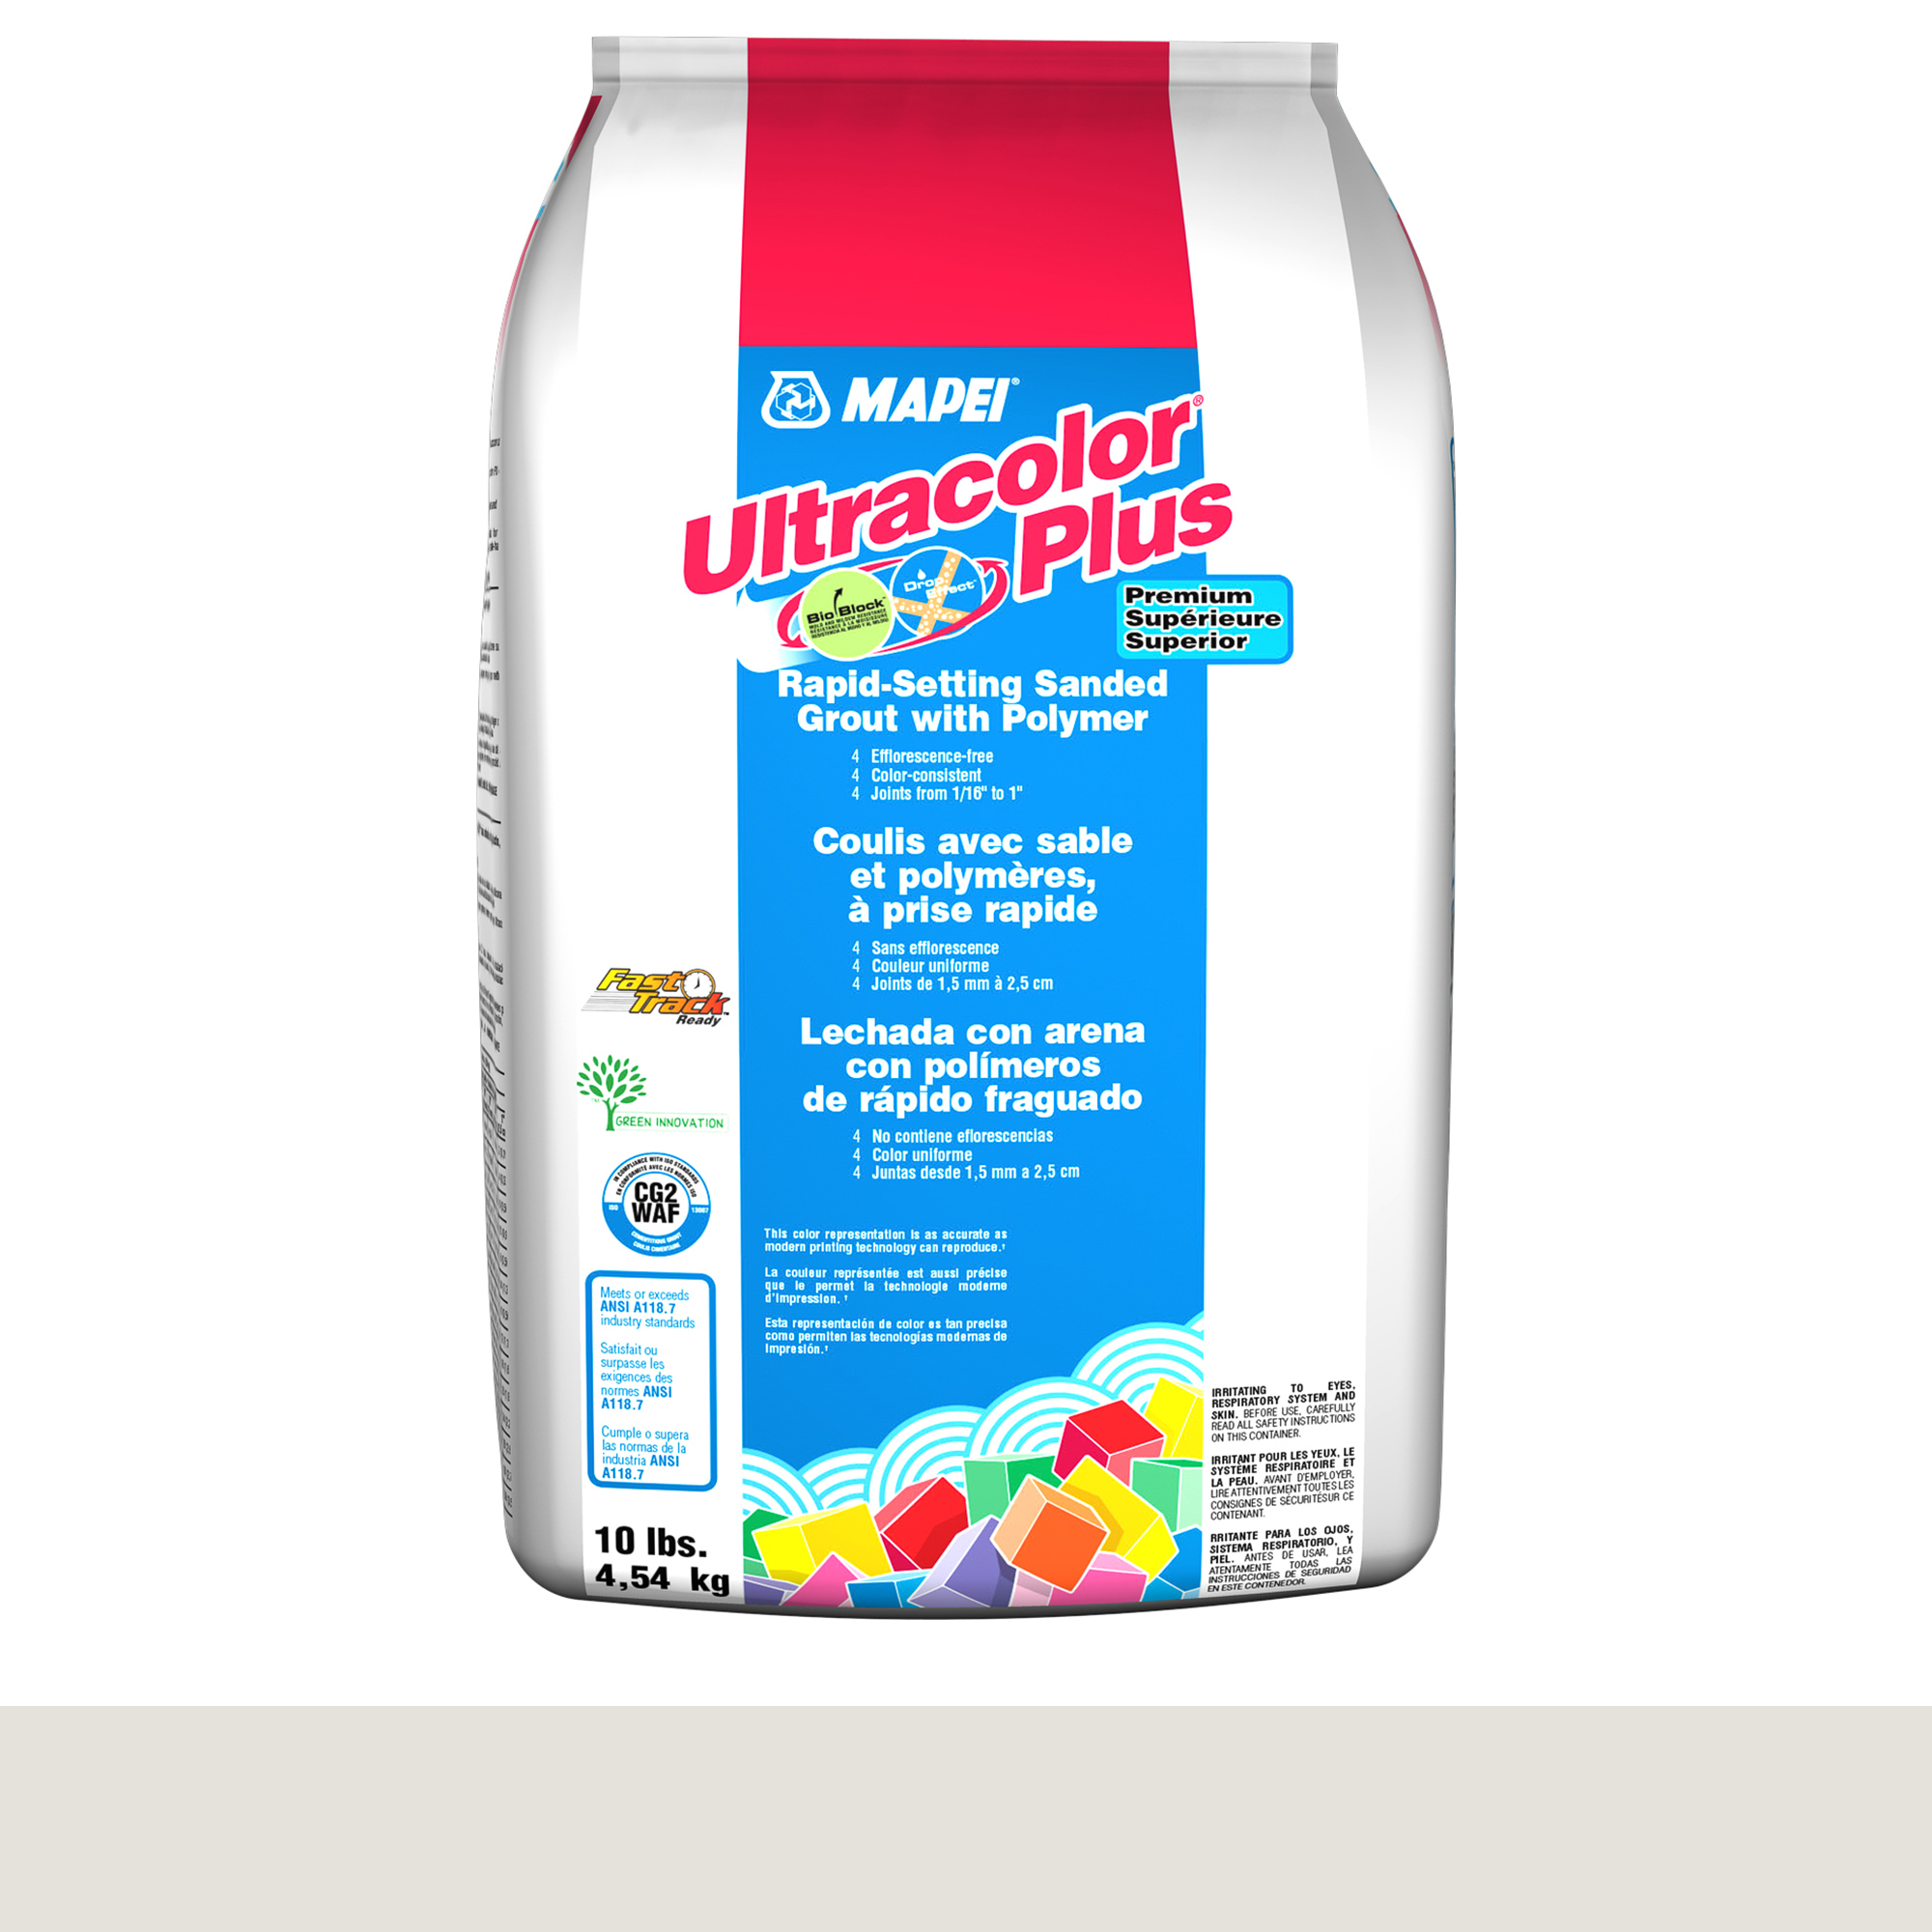 Mapei Ultracolor Plus Fa 00-White 10-Lb Bag Grout Sanded product photo